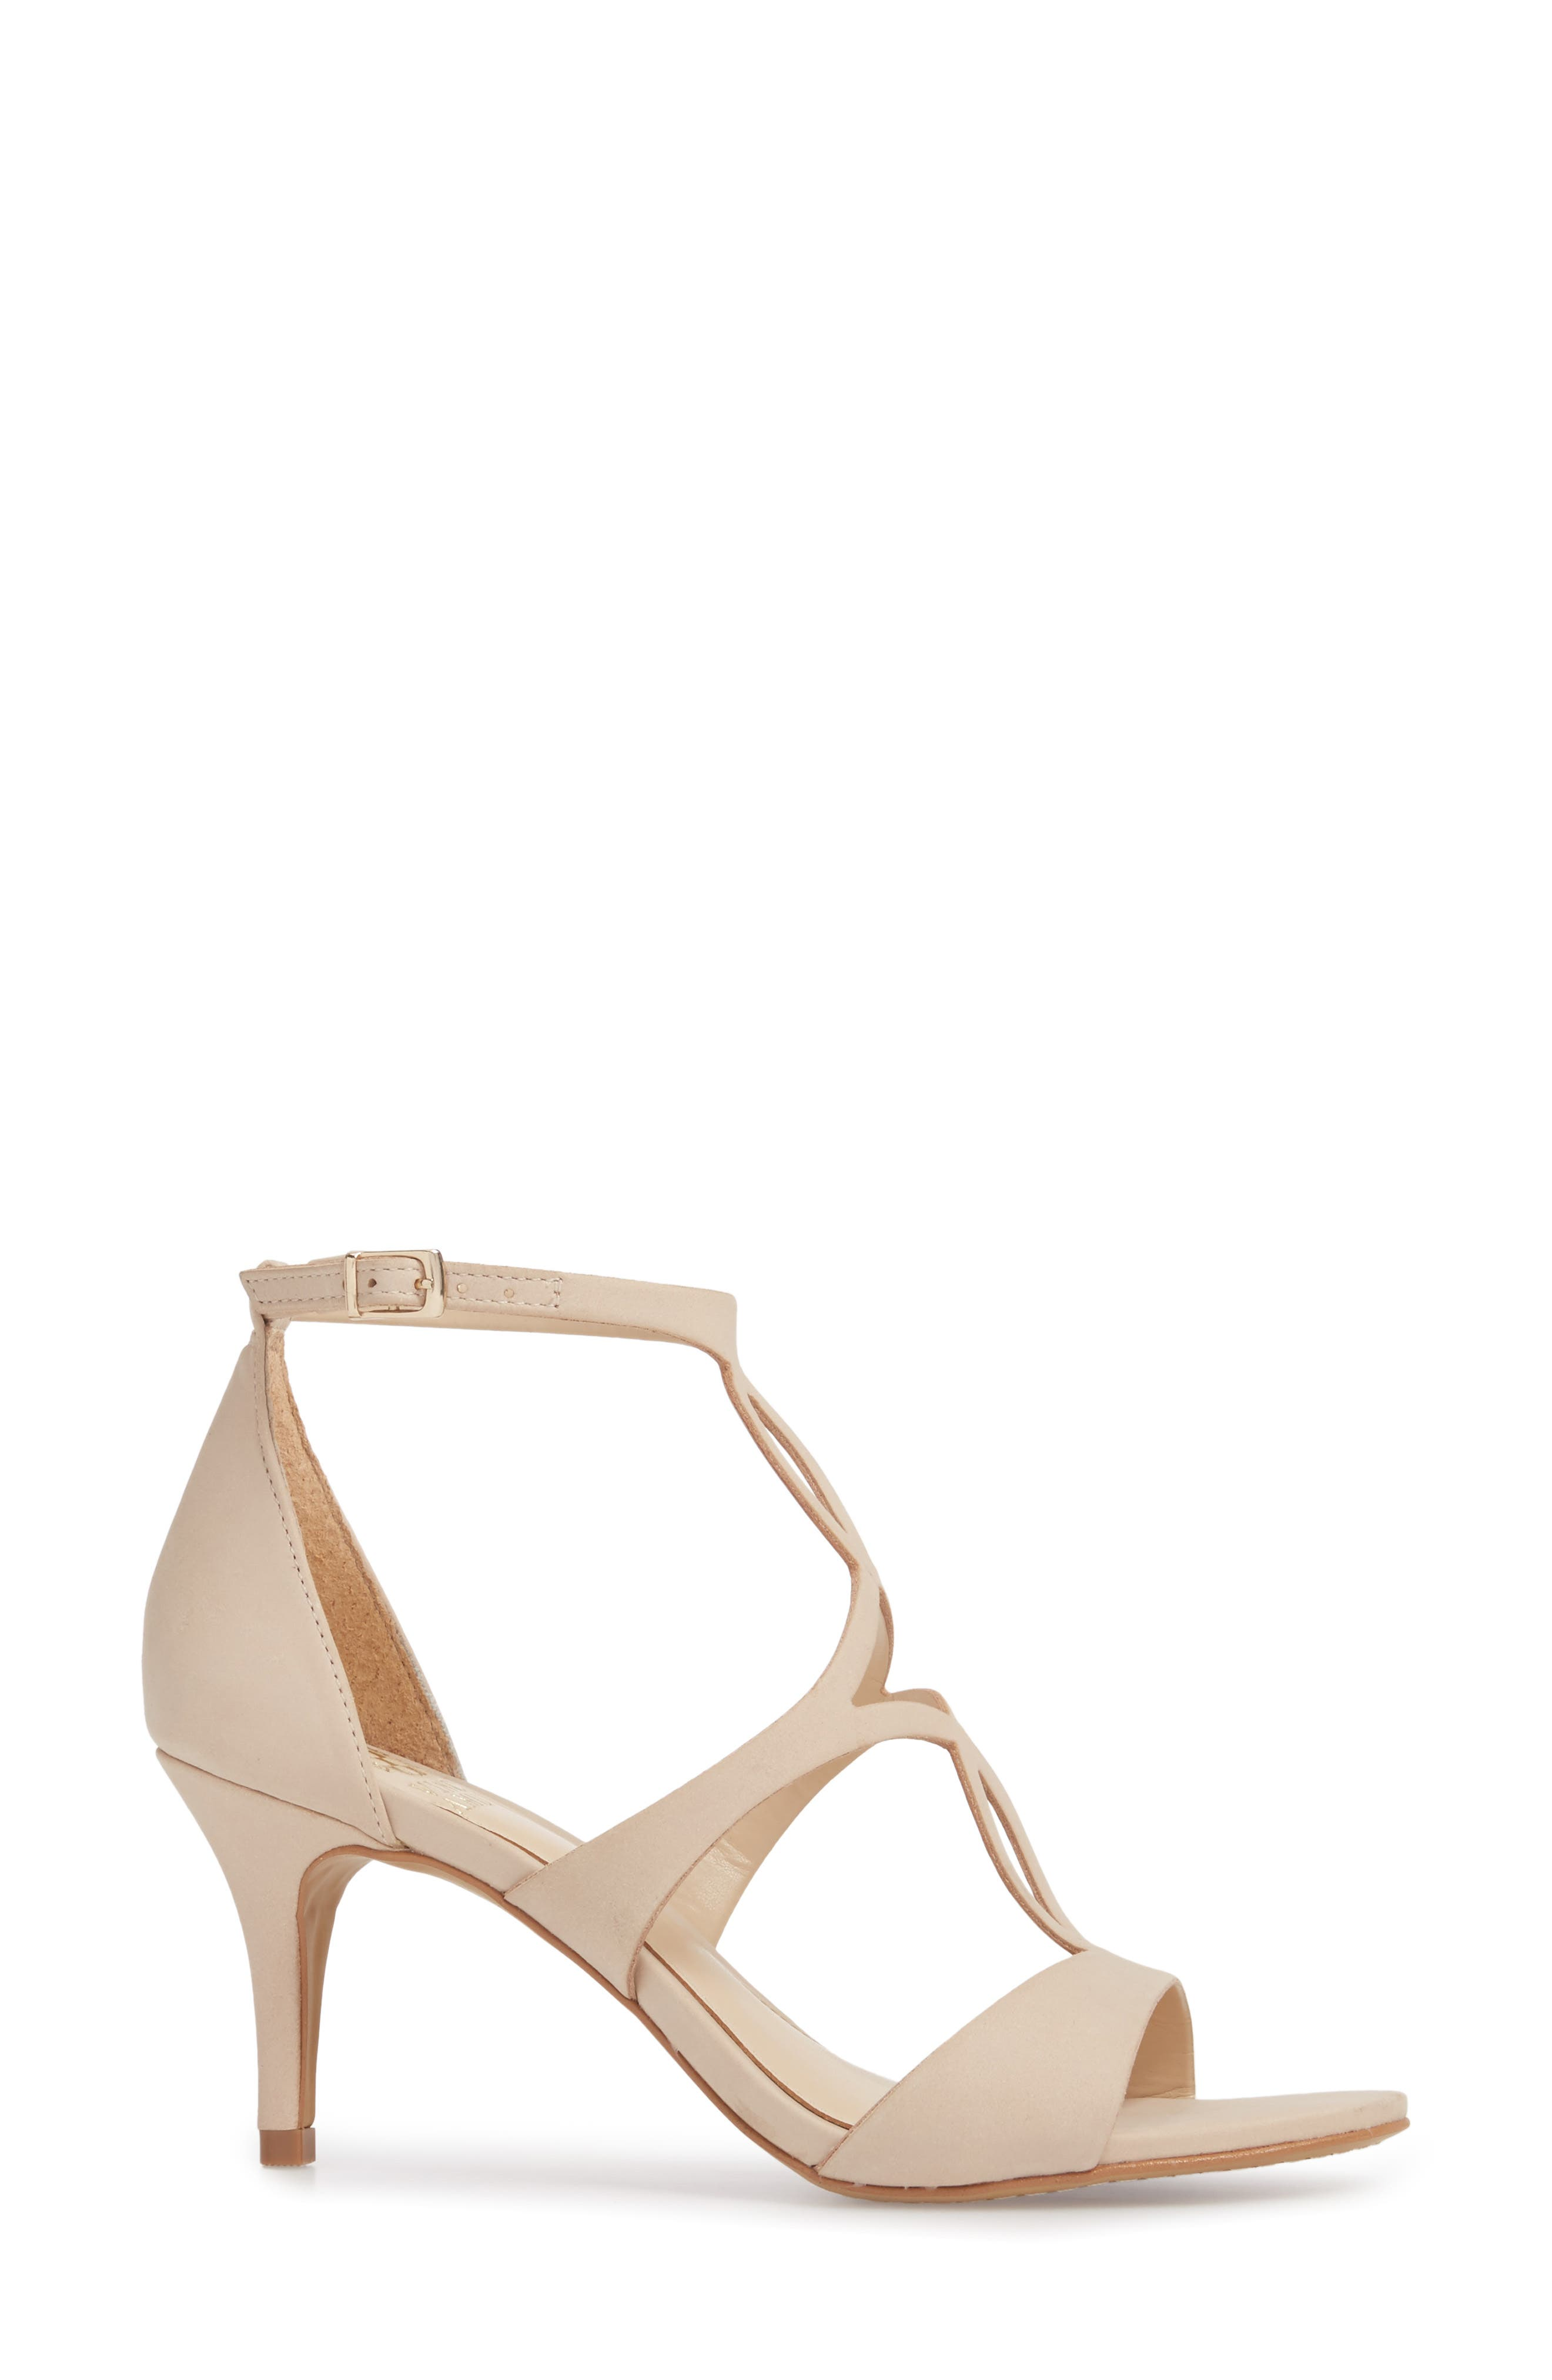 Payto Sandal,                             Alternate thumbnail 3, color,                             NUDE LEATHER